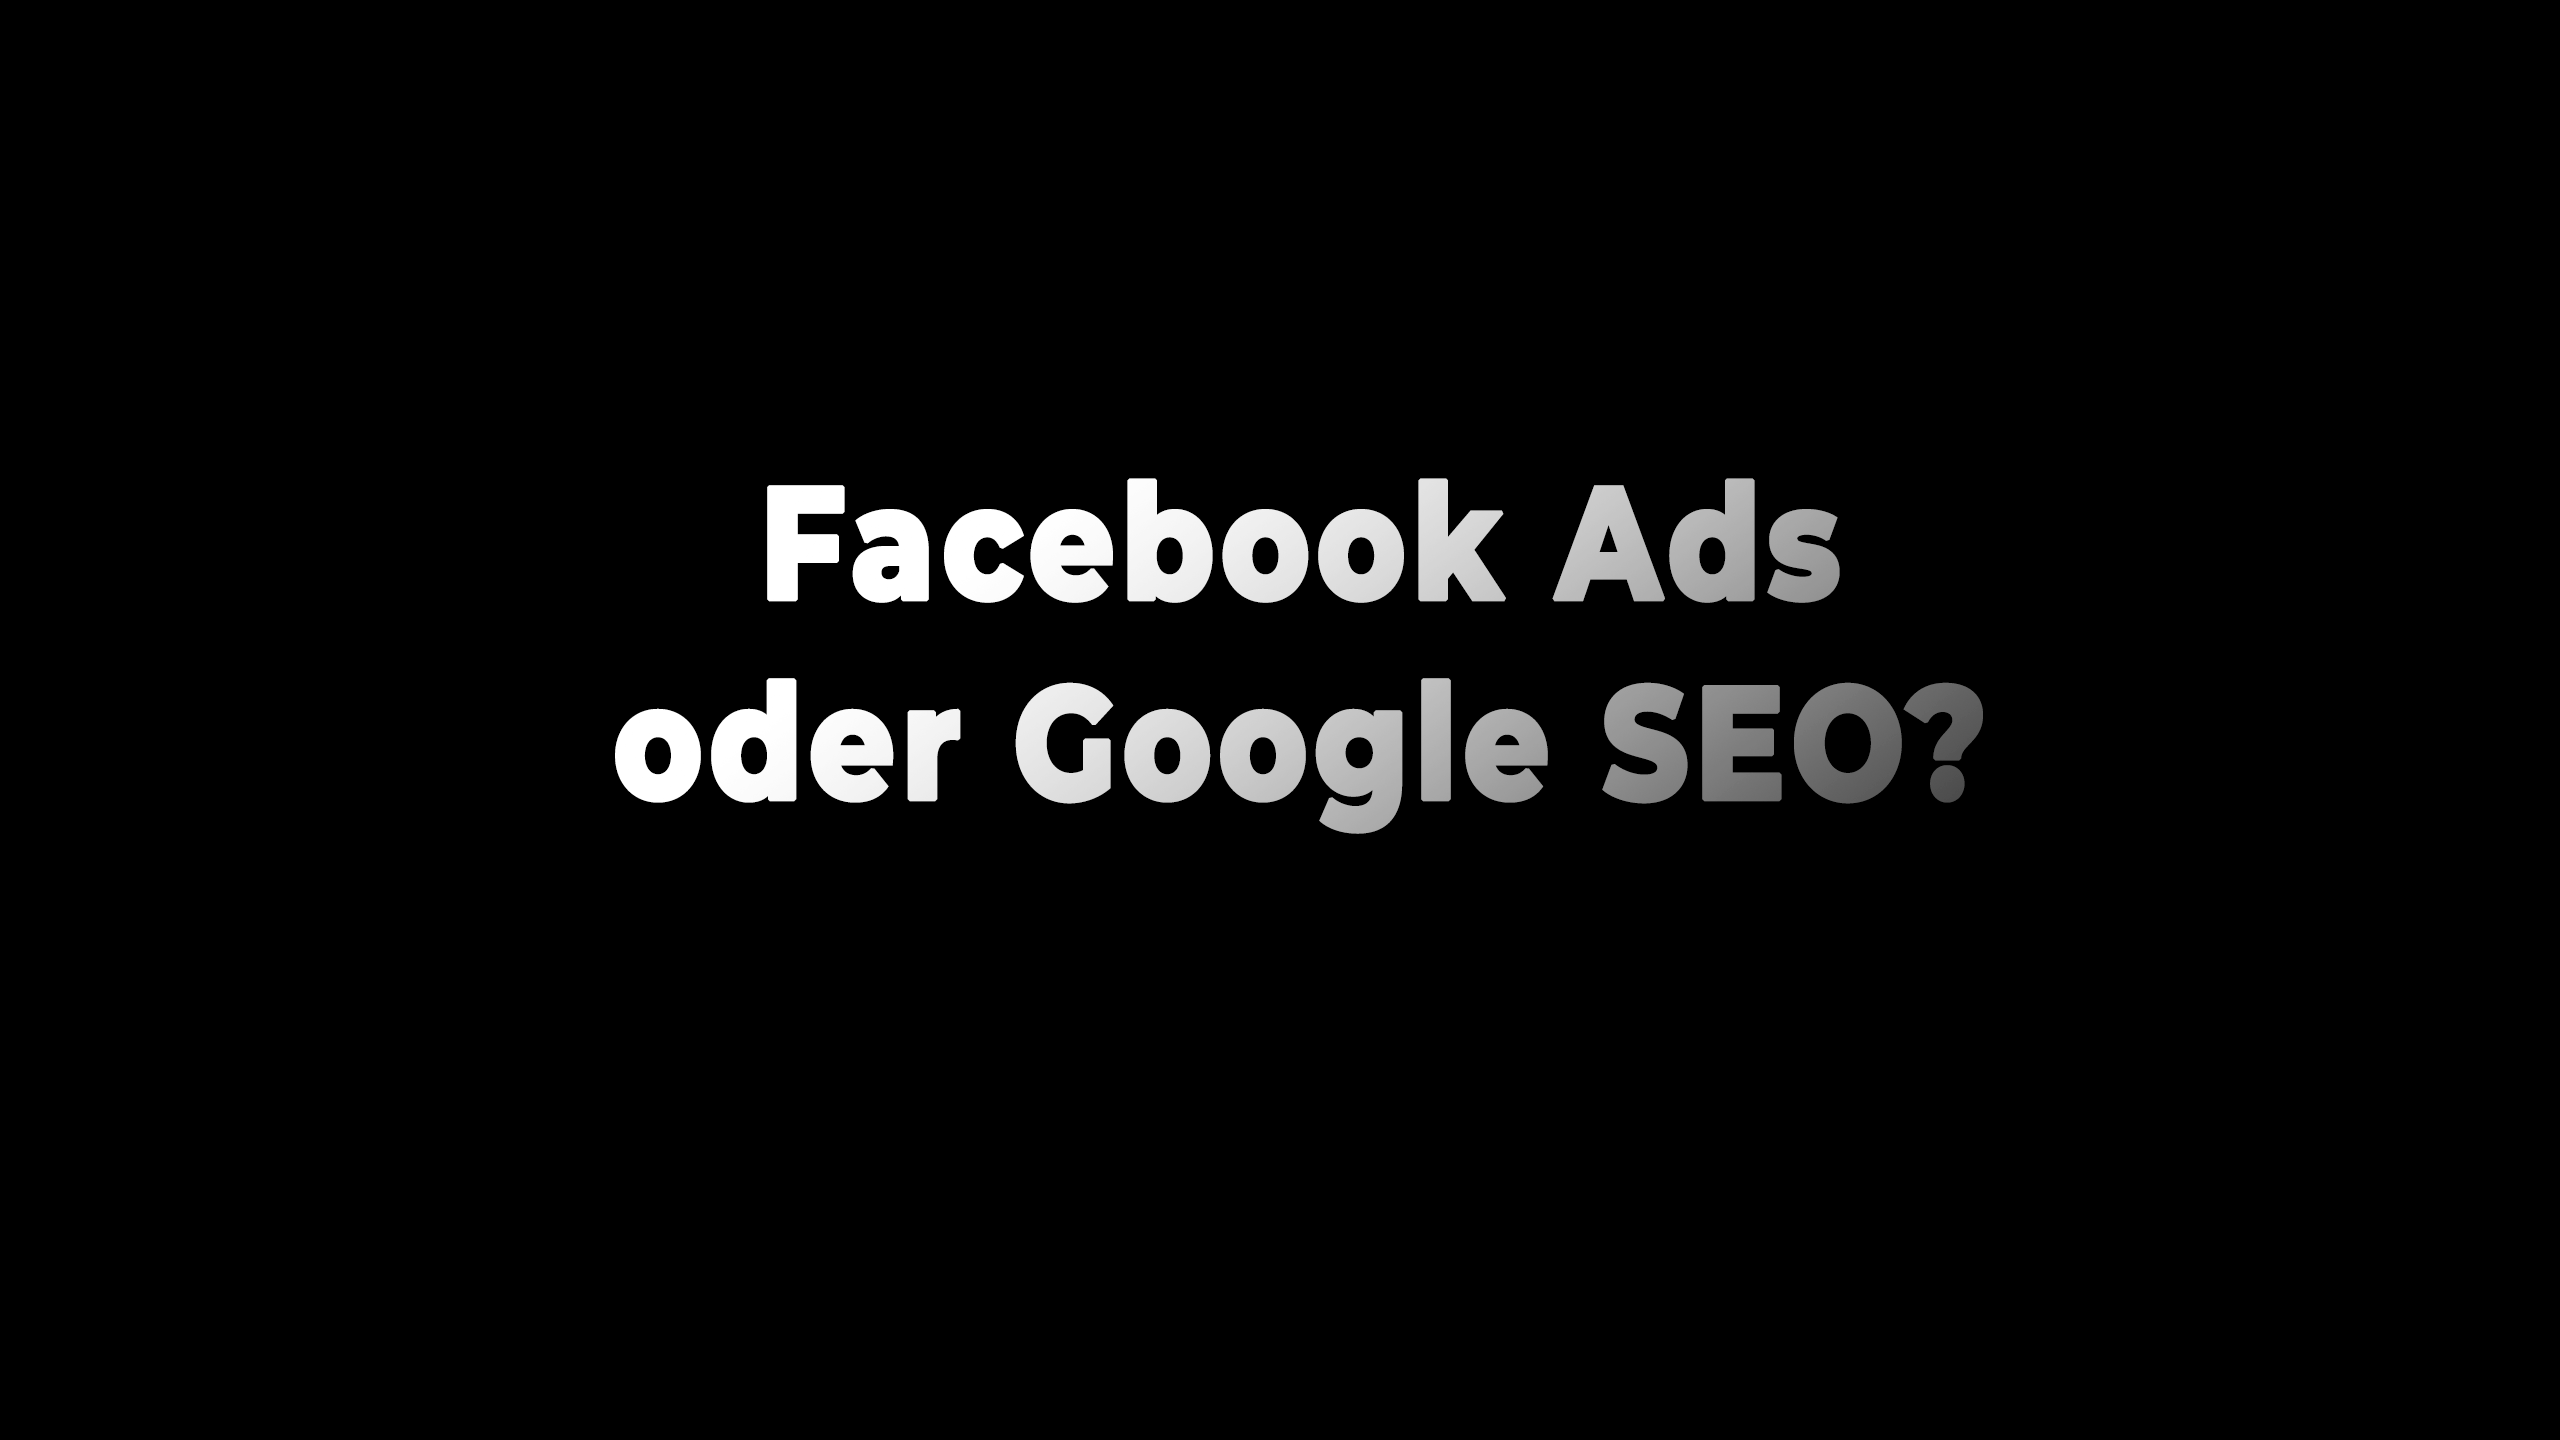 Facebook Ads oder Google SEO?